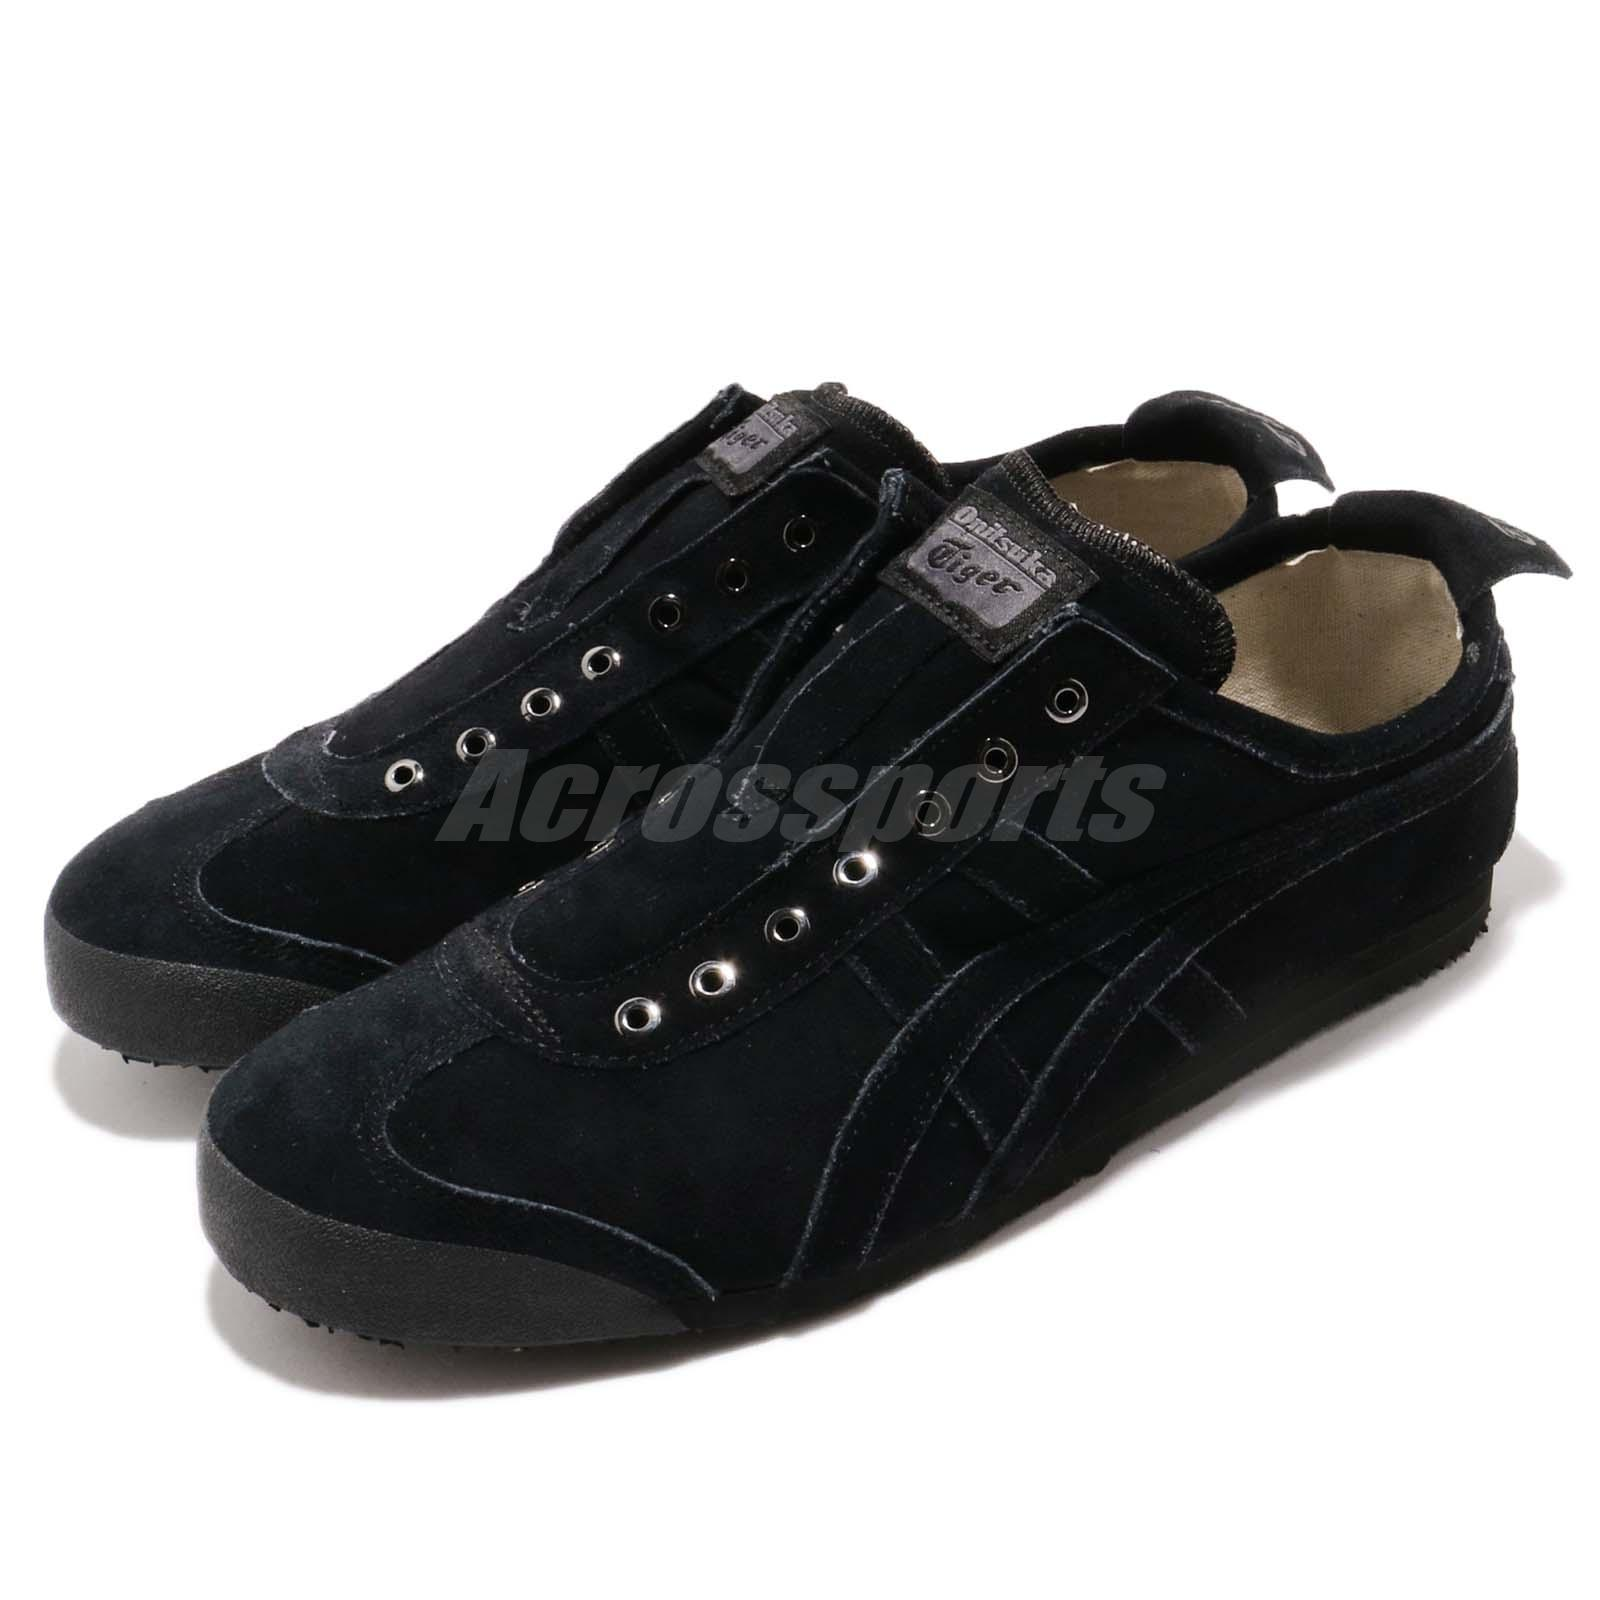 the best attitude c30fa a3edf Details about Asics Onitsuka Tiger Mexico 66 Slip On Black Men Casual Shoes  Sneaker D7L1L-9090